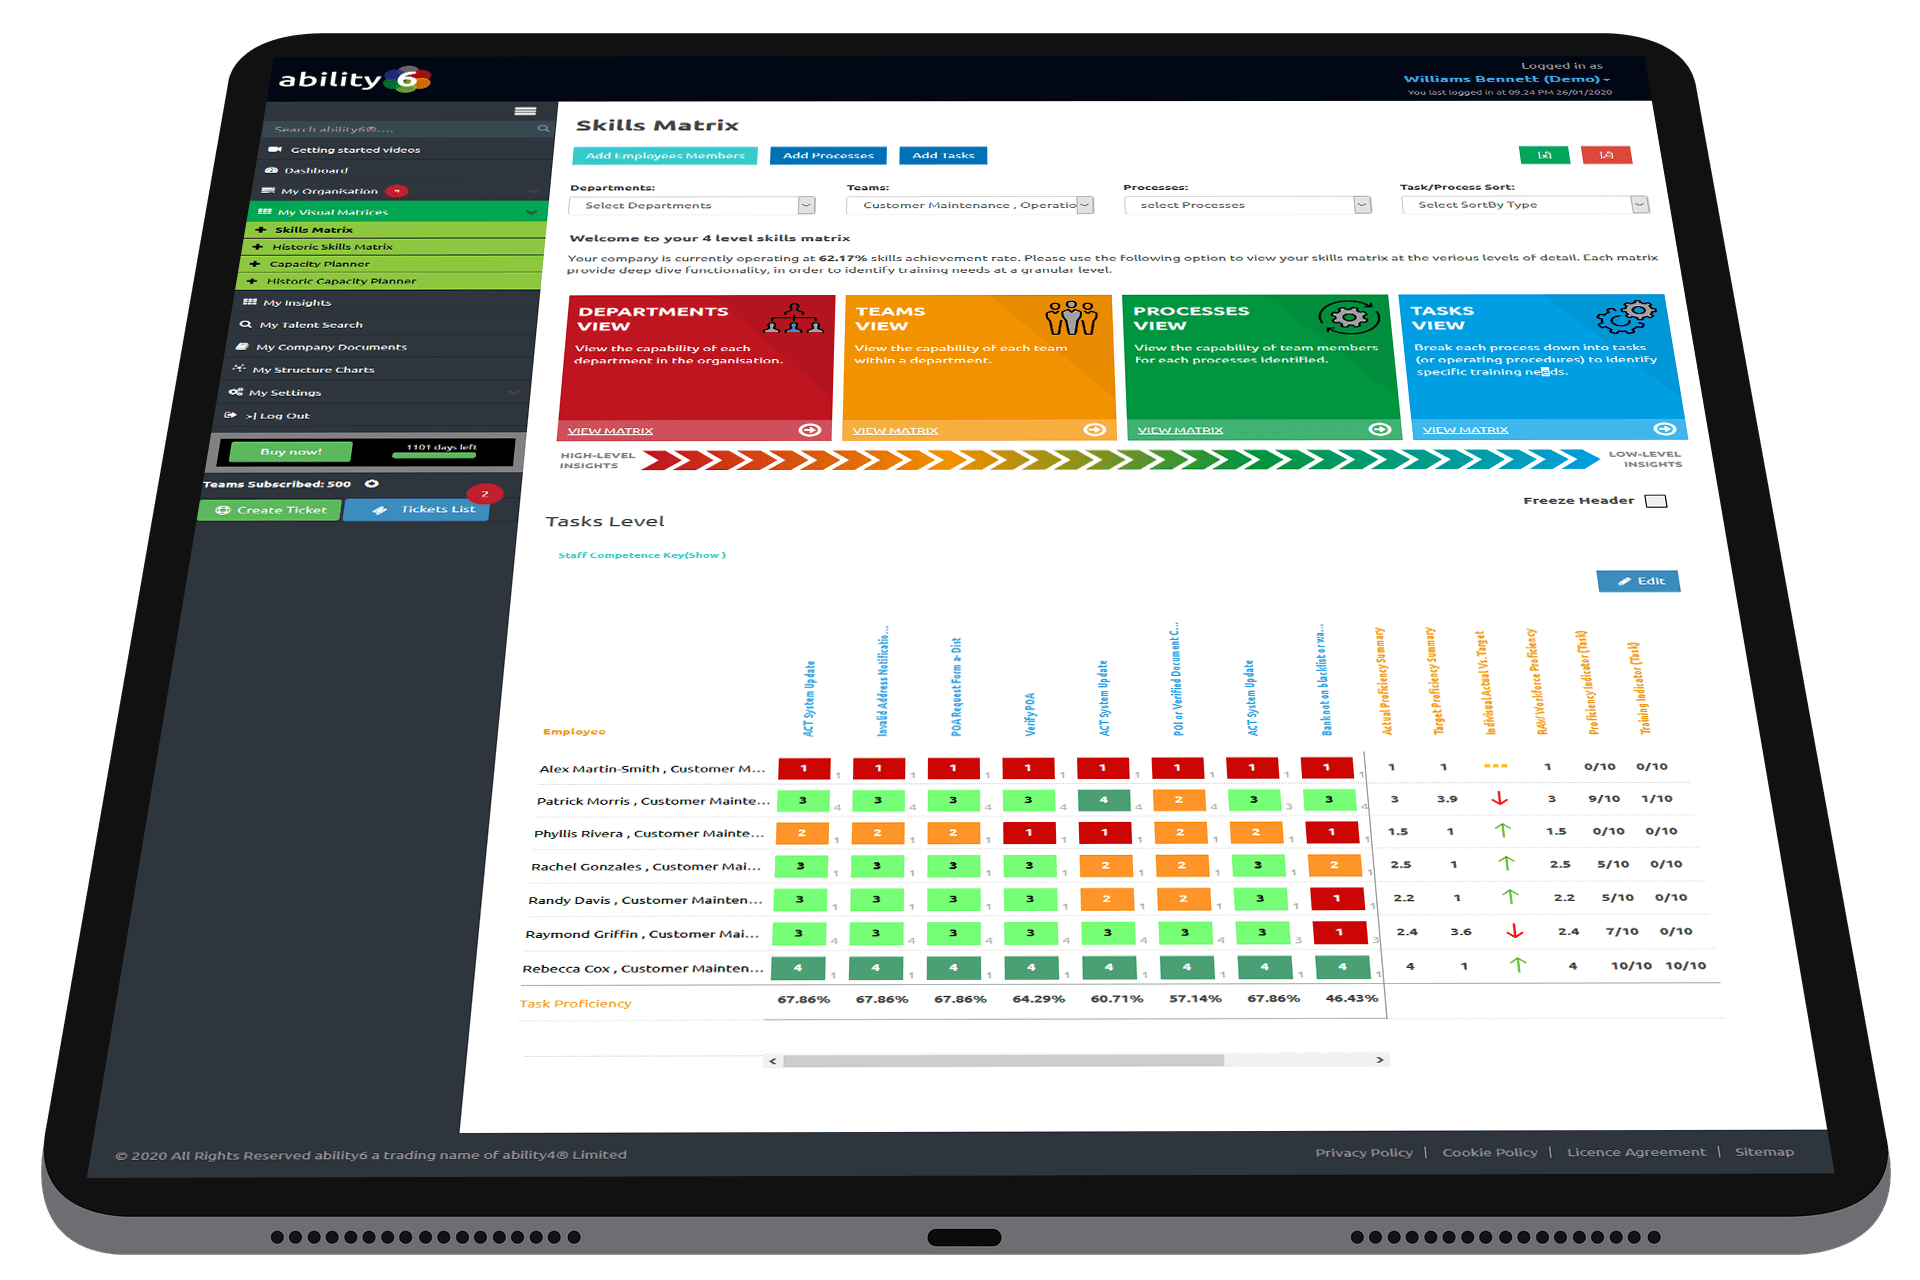 Improve team capability and team performance with the skills matrix platform from ability6. Instantly be able to identify skills gaps and implement priority based training.